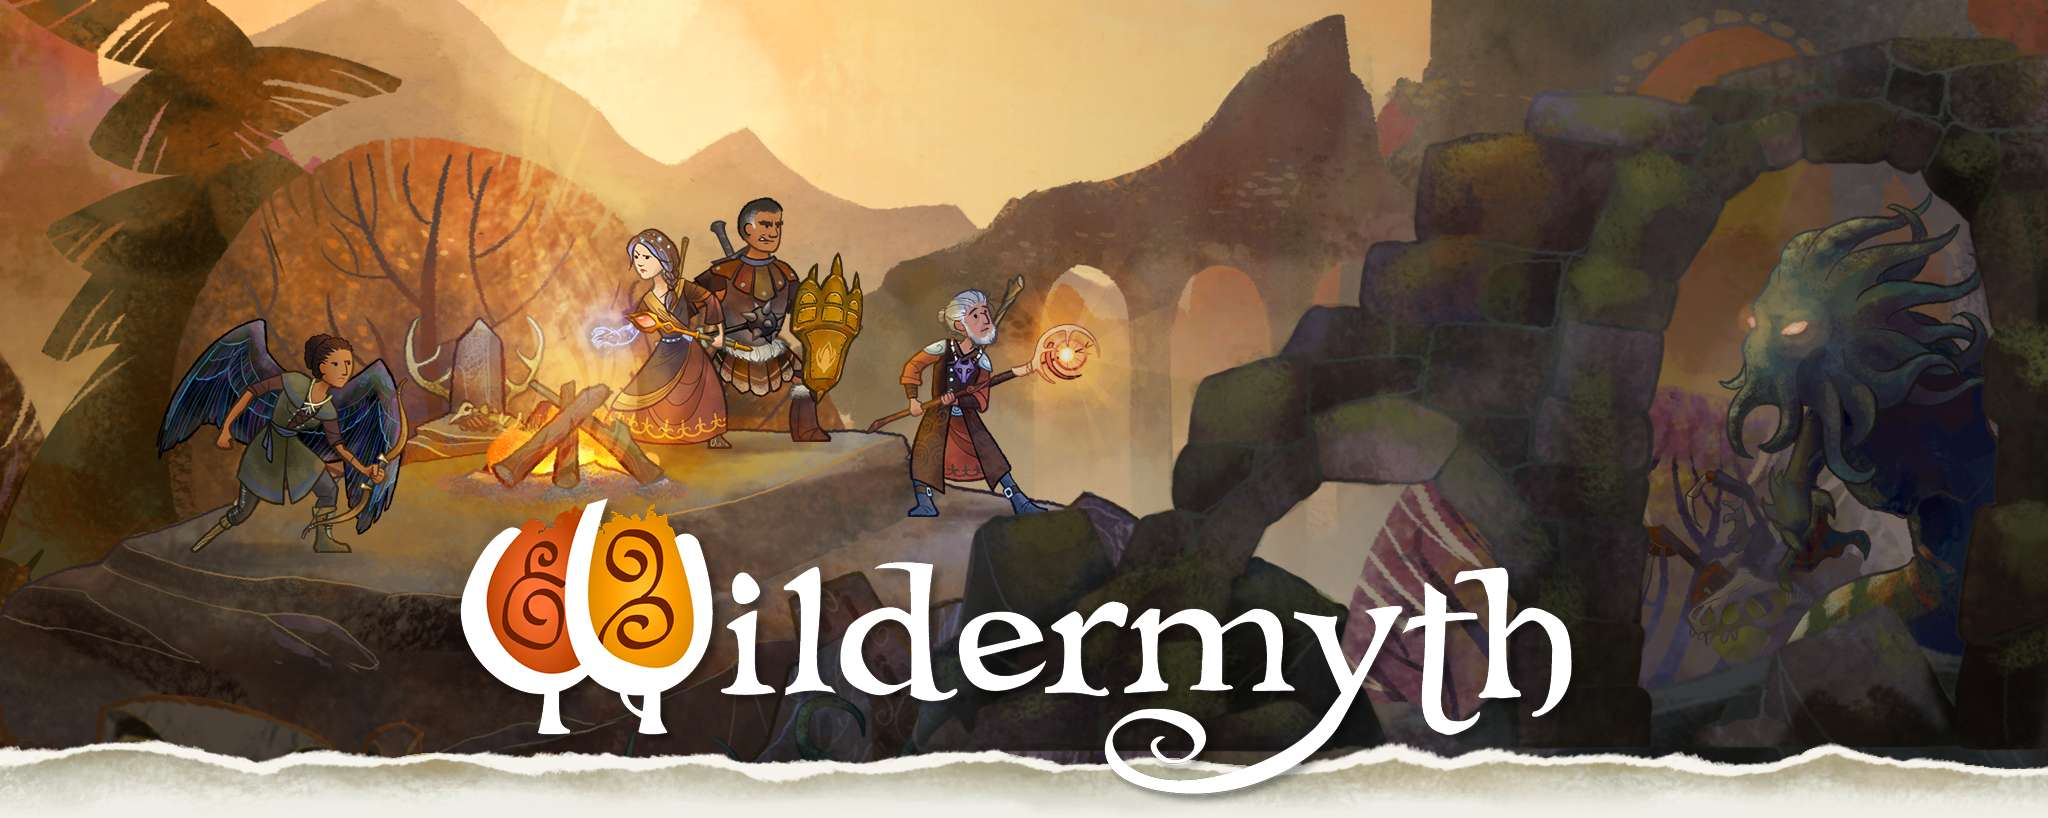 Wildermyth Review – Paper Cut Out Characters That You'll Get Weirdly Attached To